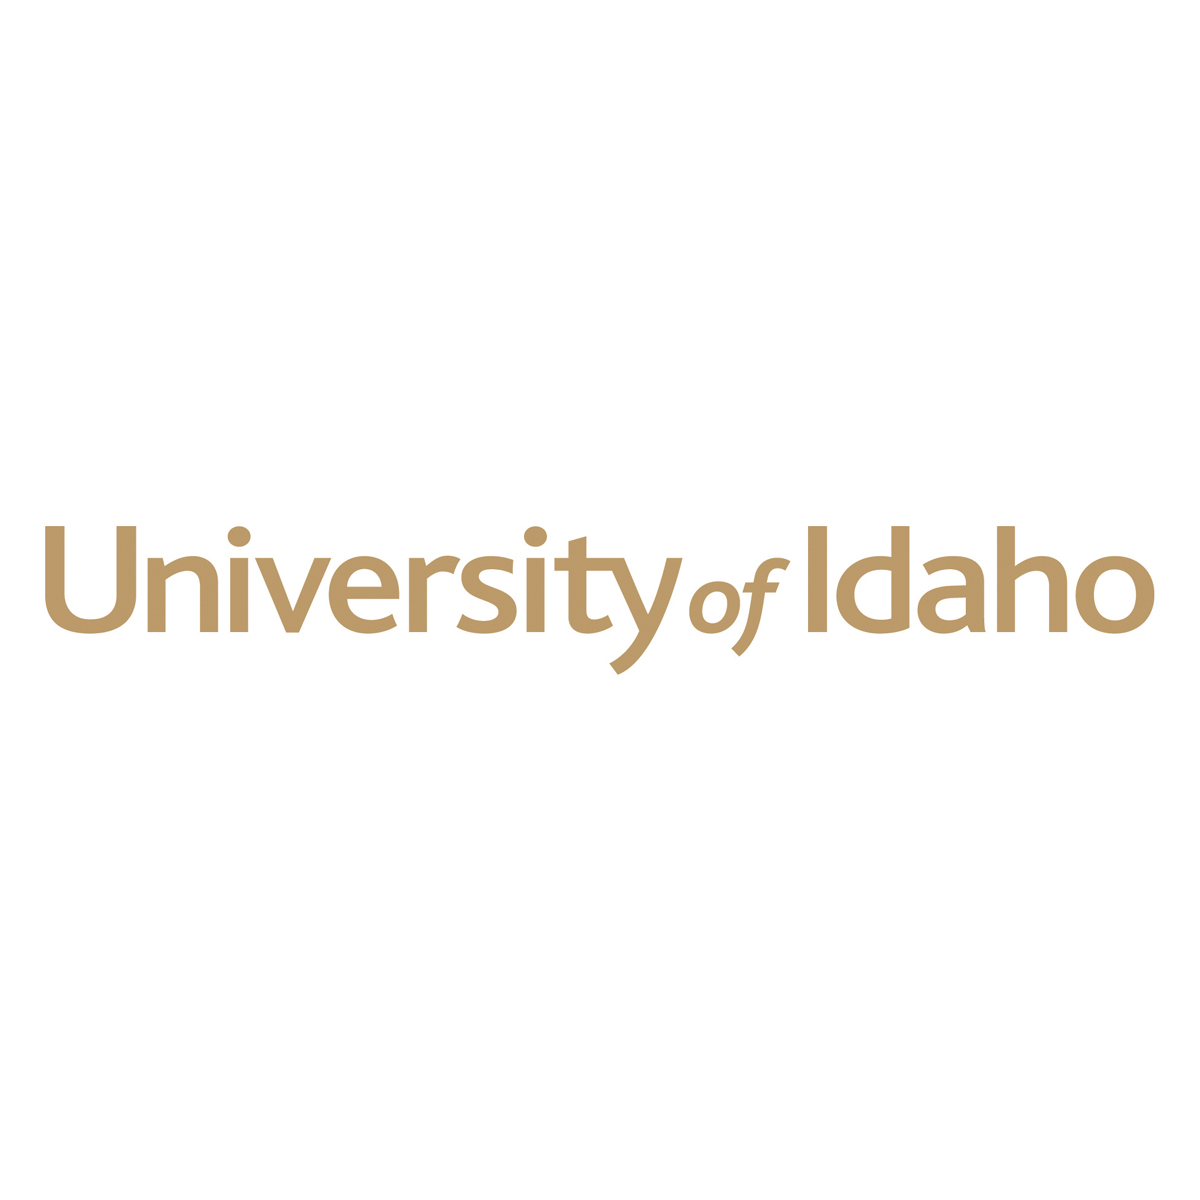 Logo of the University of Idaho